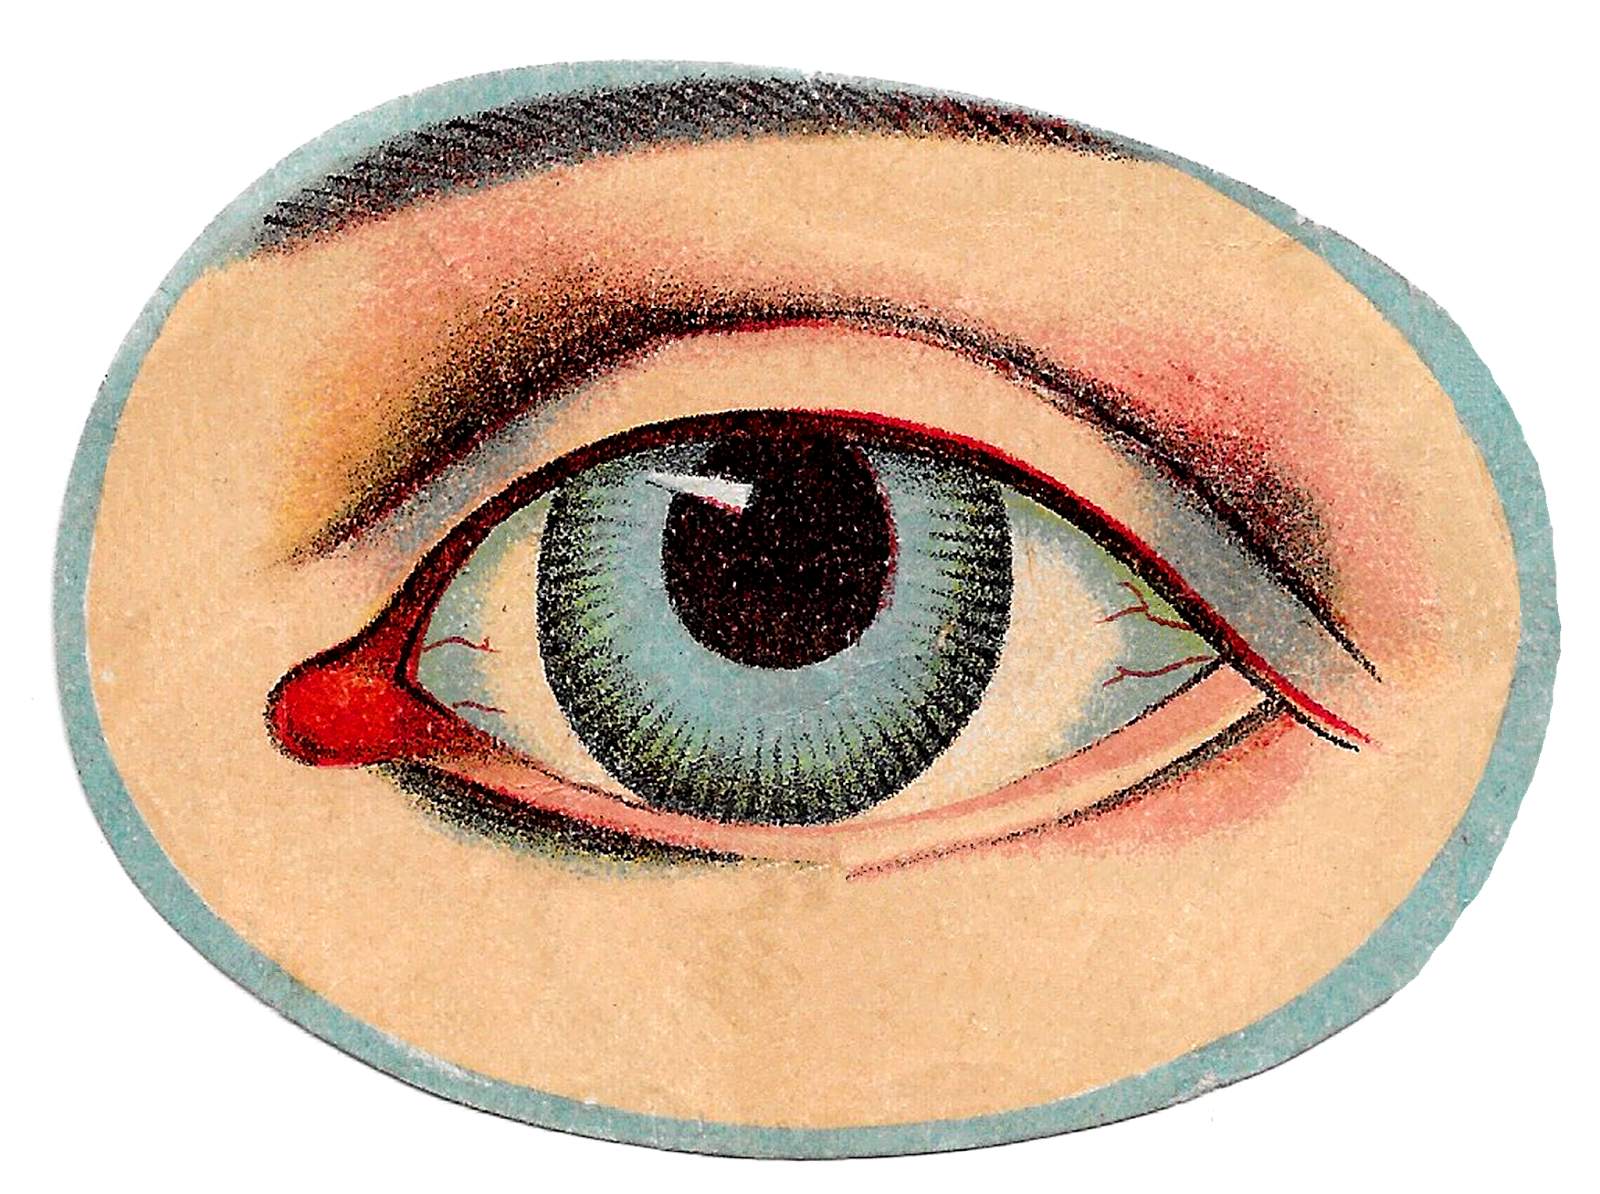 Unique Vintage Medical Human Anatomy Illustrations Of The Eye Hand And Head With Skeleton Images Eye Art Eye Illustration Antique Images